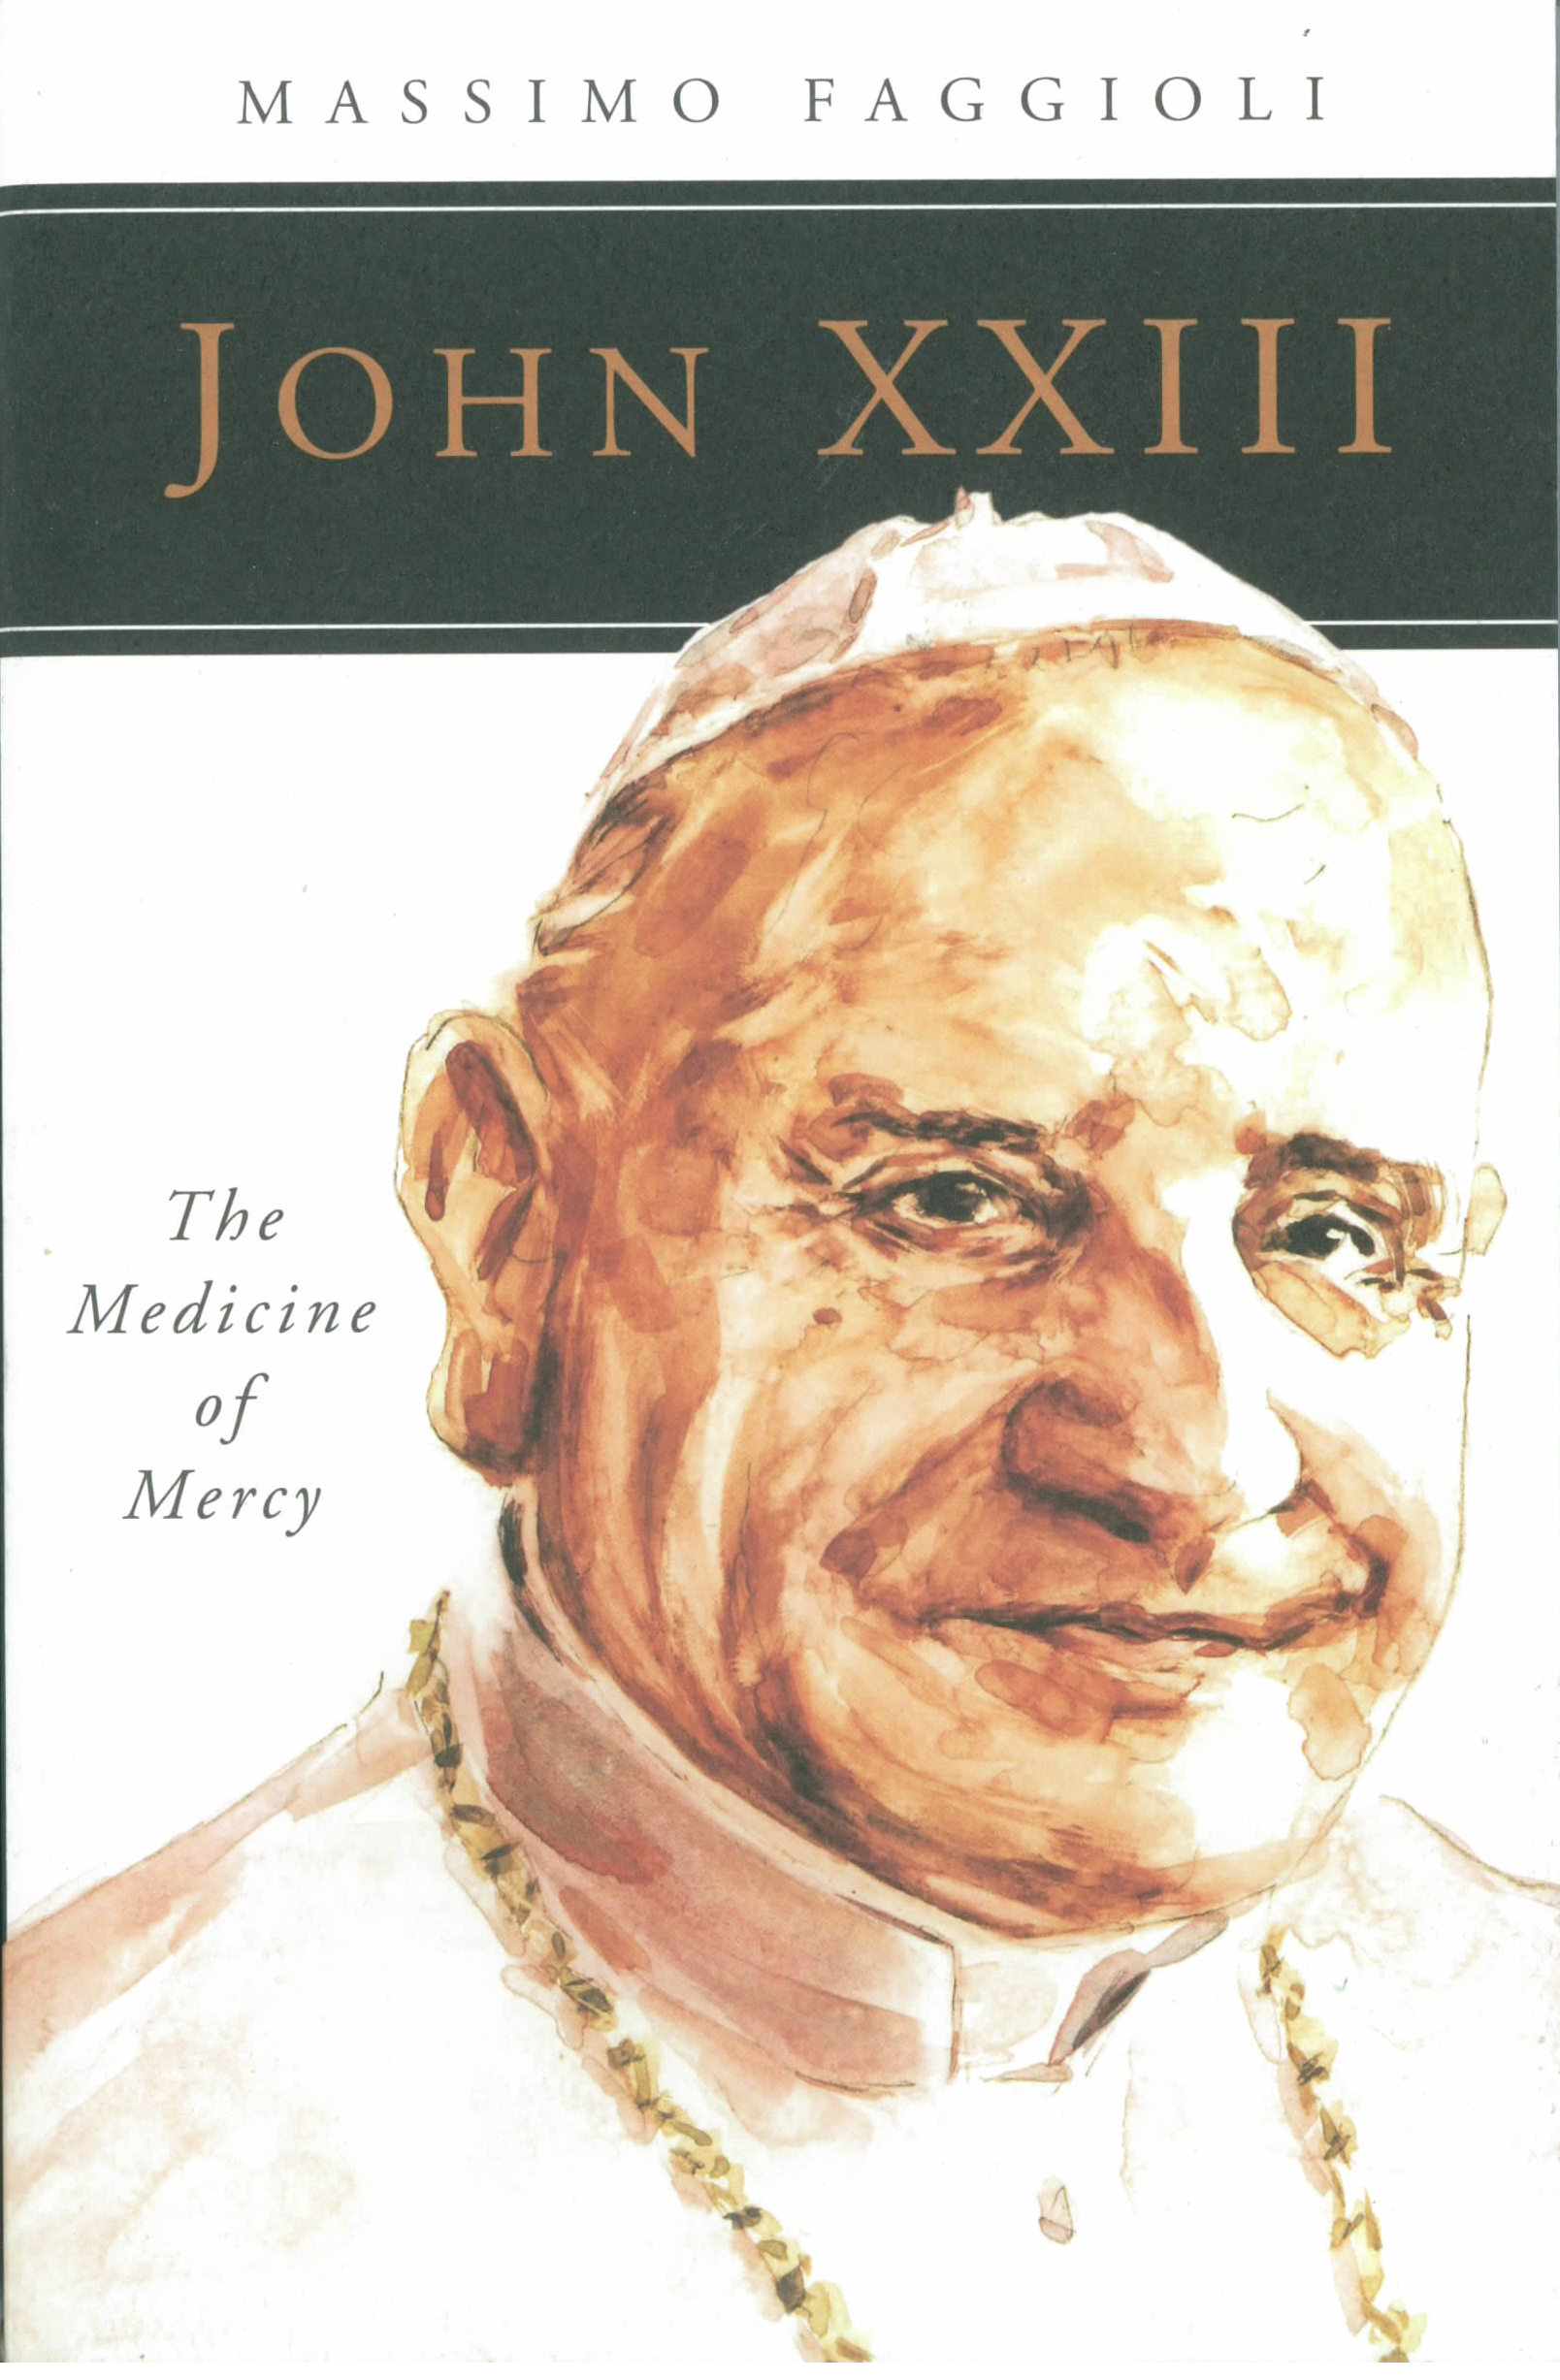 John XXIII: The Medicine of Mercy by Massimo Faggioli 108-9780814649510